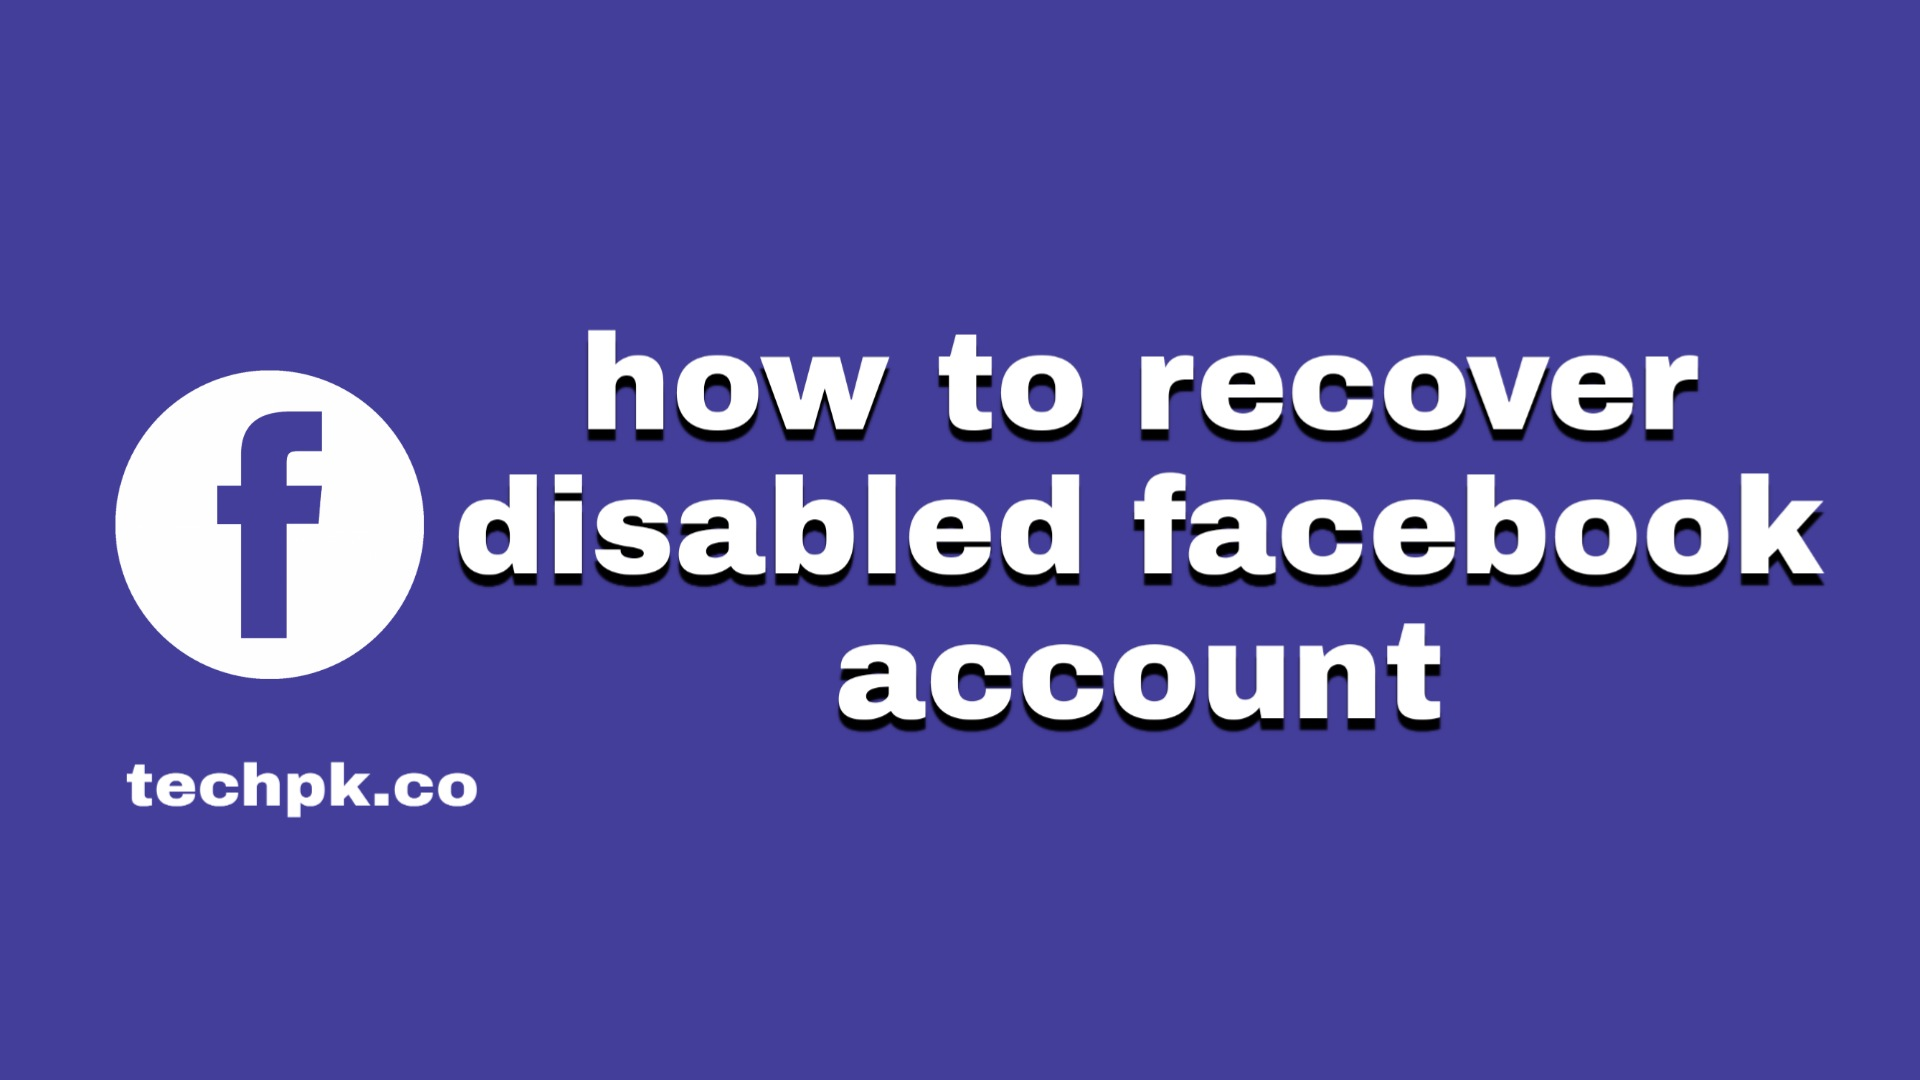 how to recover disabled facebook account 2021 [my disabled facebook account]